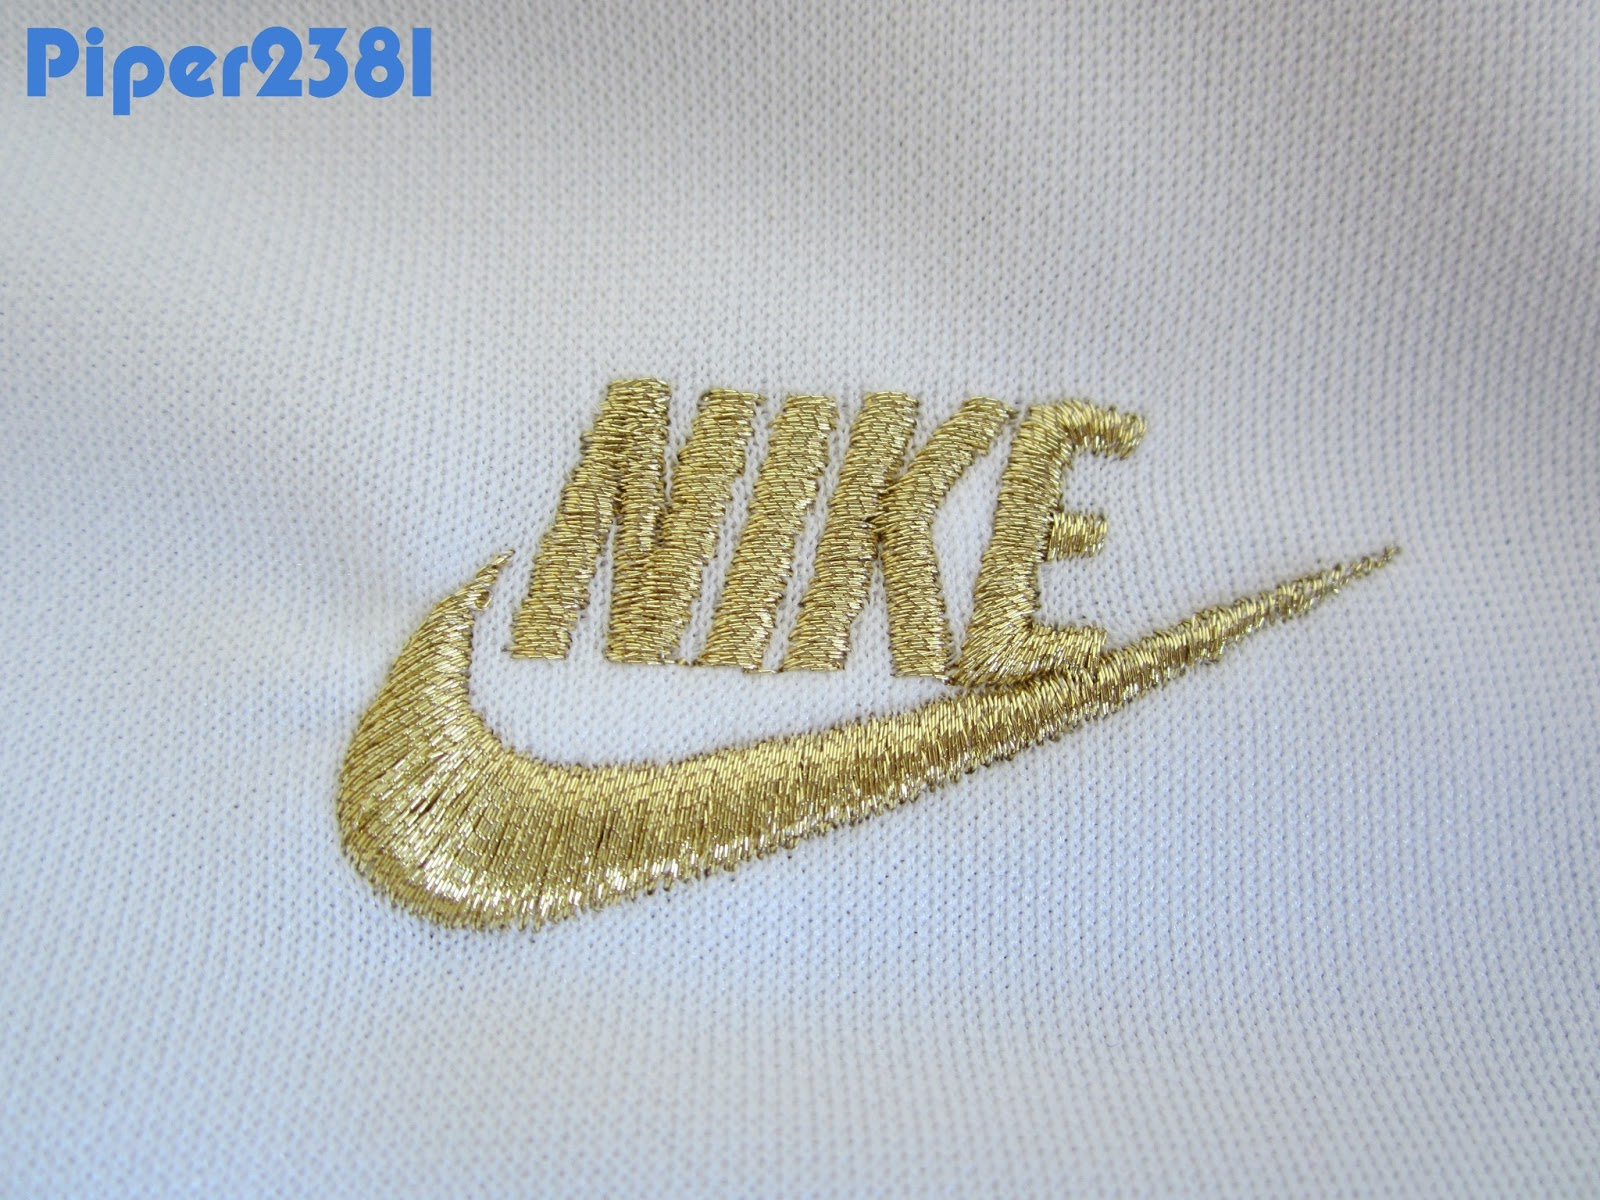 Piper2381: Michael Jordan Olympic Jerseys